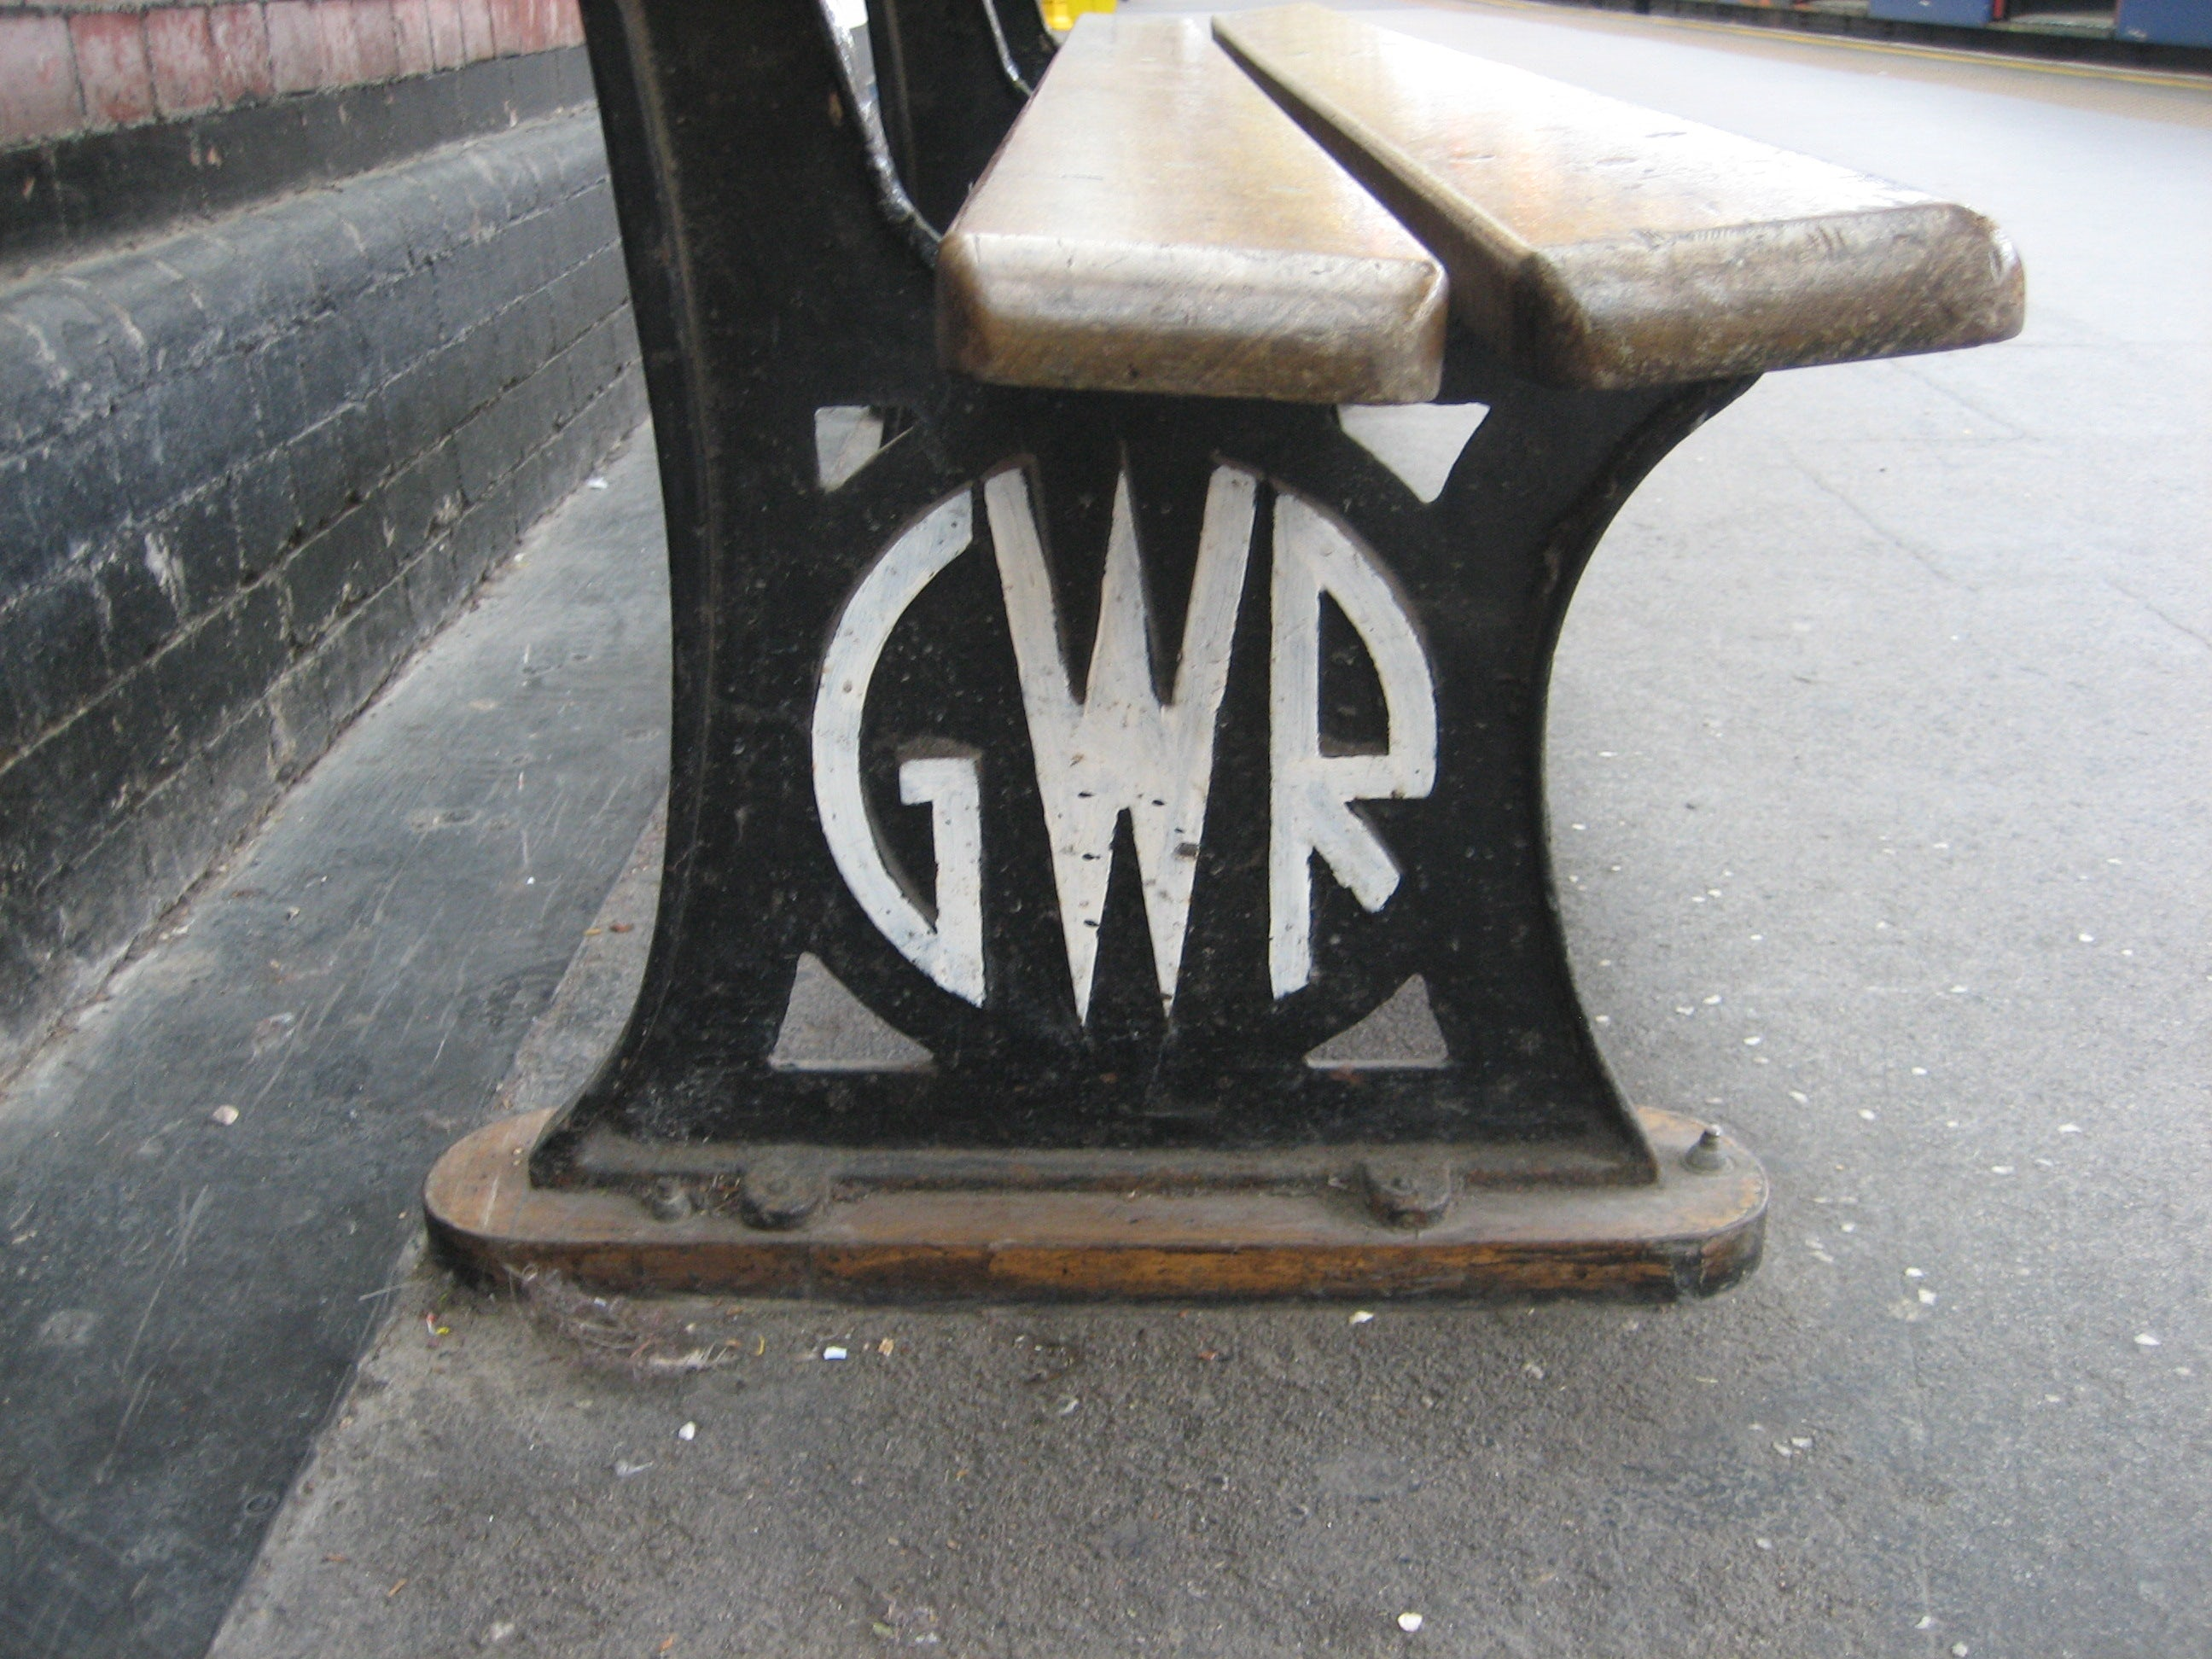 Original GWR logo on a bench at Hammersmith station (photo: 150greatthingsabouttheunderground.com)